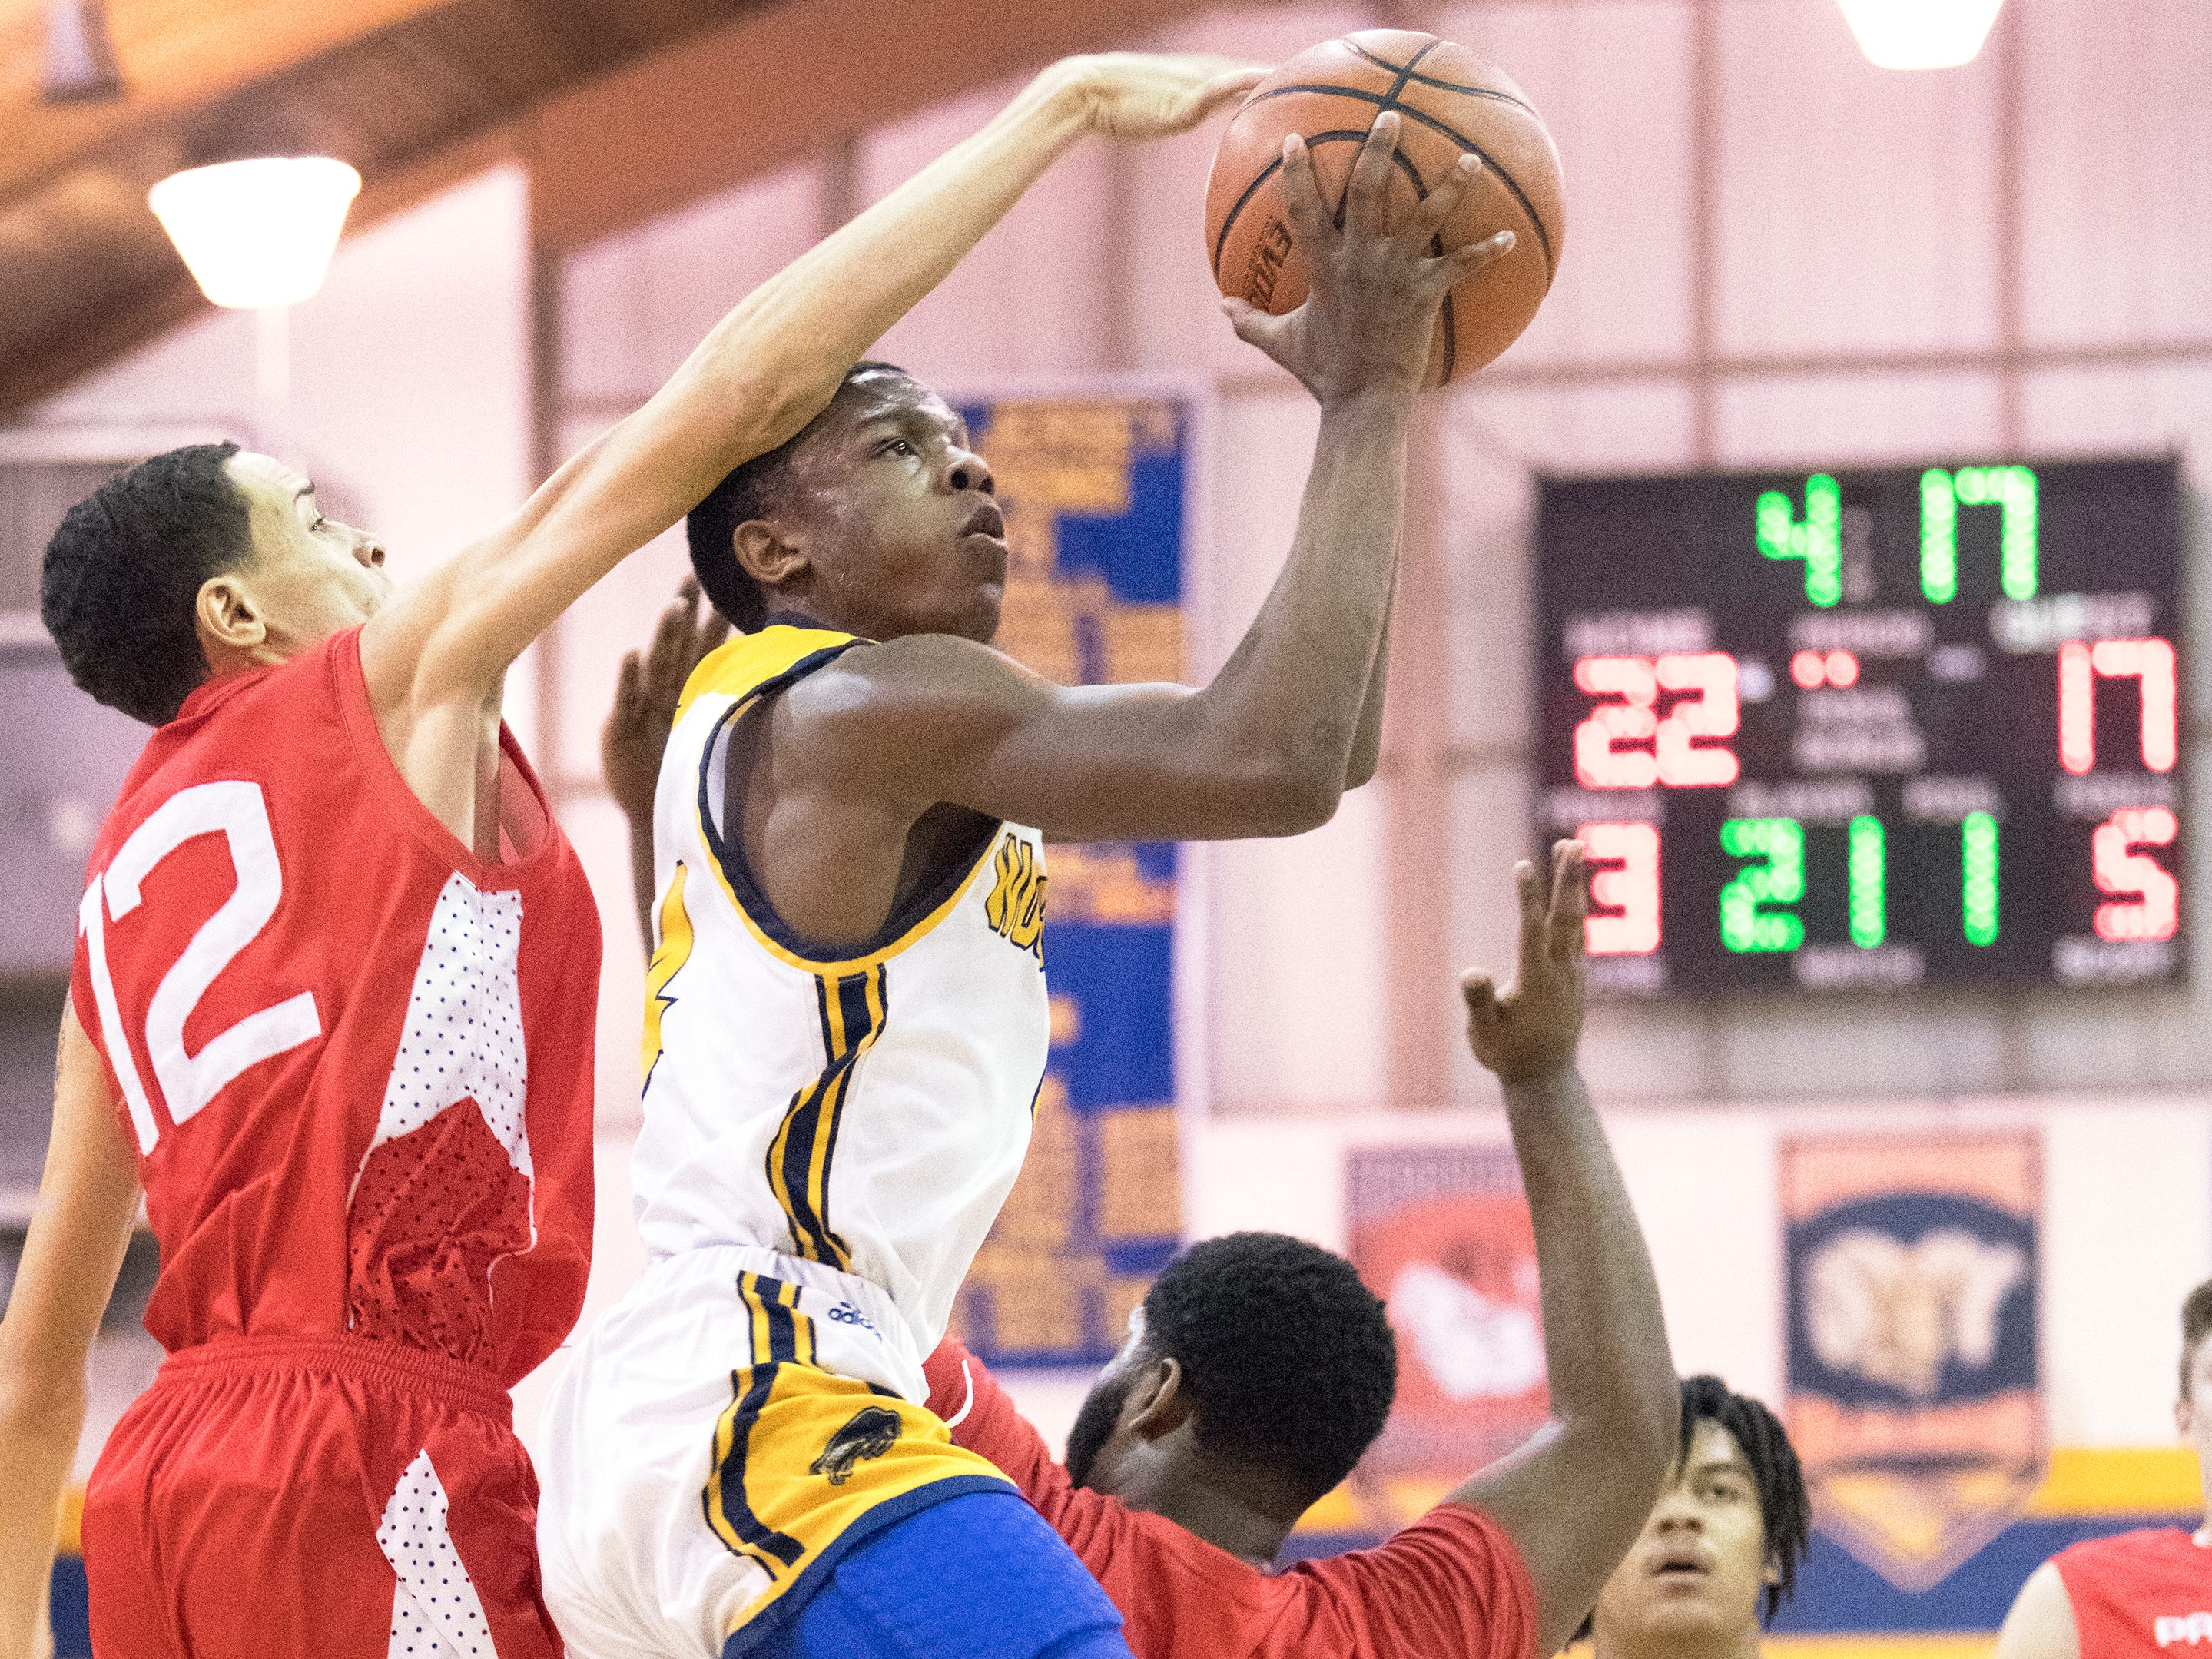 Woodbury's Tommy Carter shoots in front of  Paulsboro's Lamonte Smith during the 2nd quarter of the South Jersey Group 1, first round boys basketball playoff game played at Woodbury High School on Tuesday, February 26, 2019.   Woodbury defeated Paulsboro, 69-41.